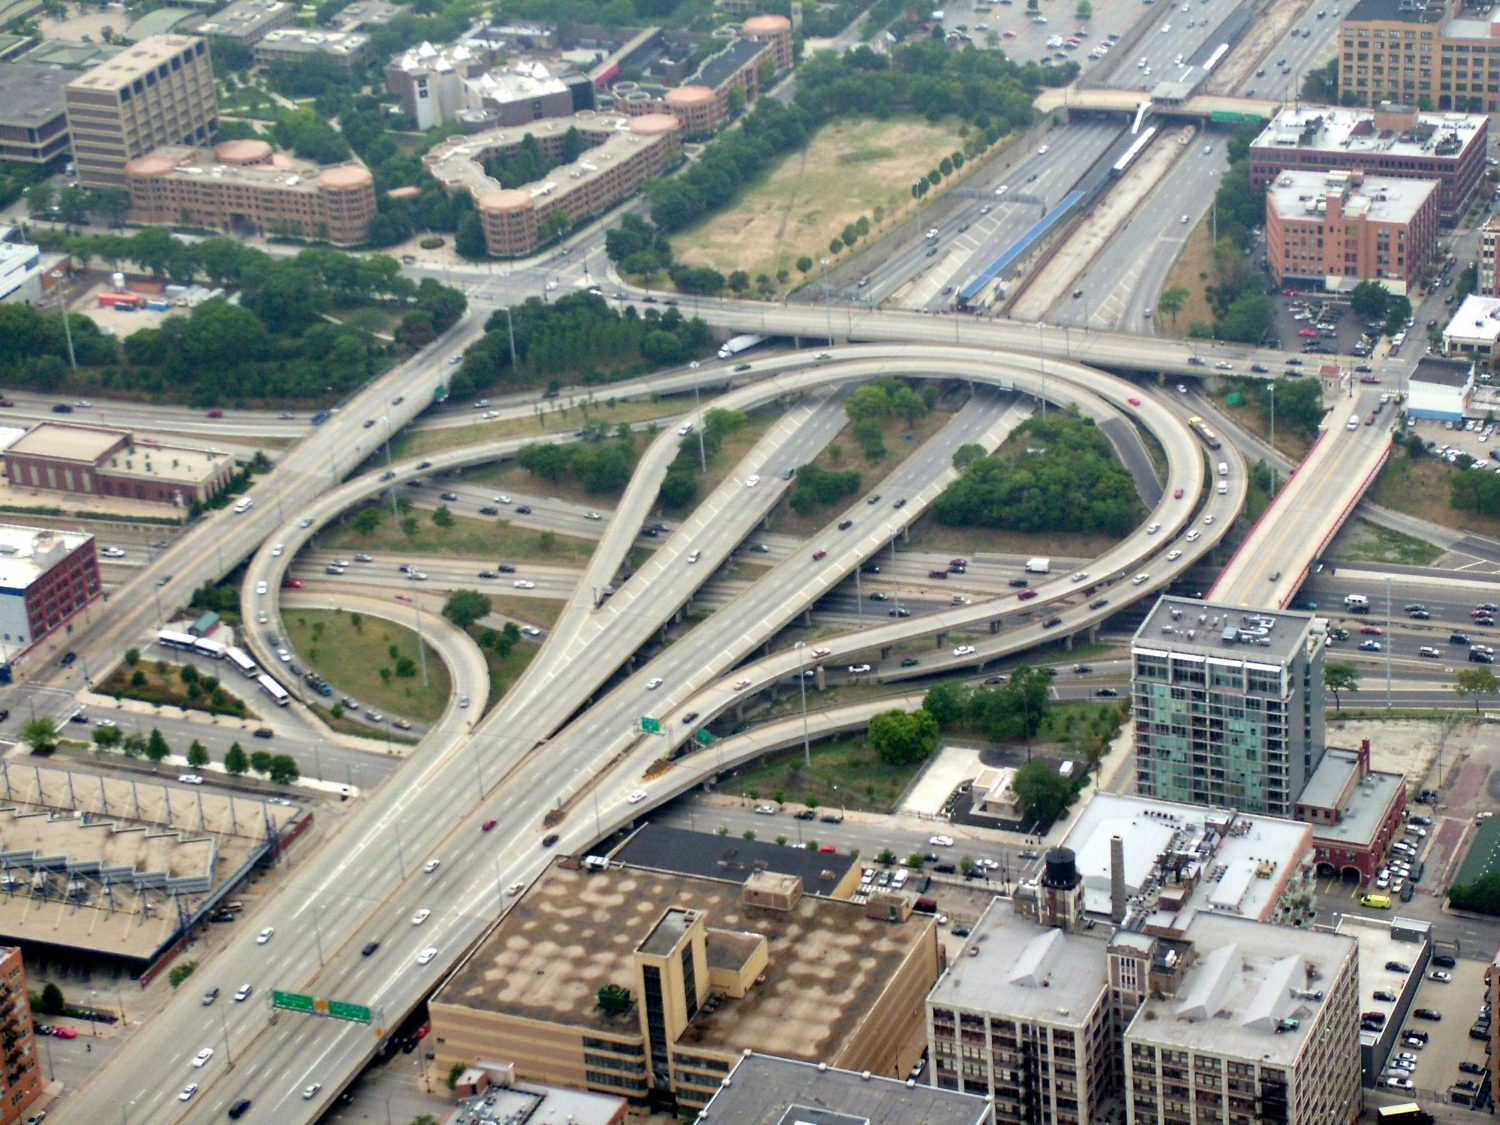 Urban fragmentation created by an interchange in Chicago . Overhead photo of the Circle Interchange in Chicago, IL. Source=self-made  Date=August 12, 2006  Author= Stratosphere. Image registered under Creative Commons 4.0 license.